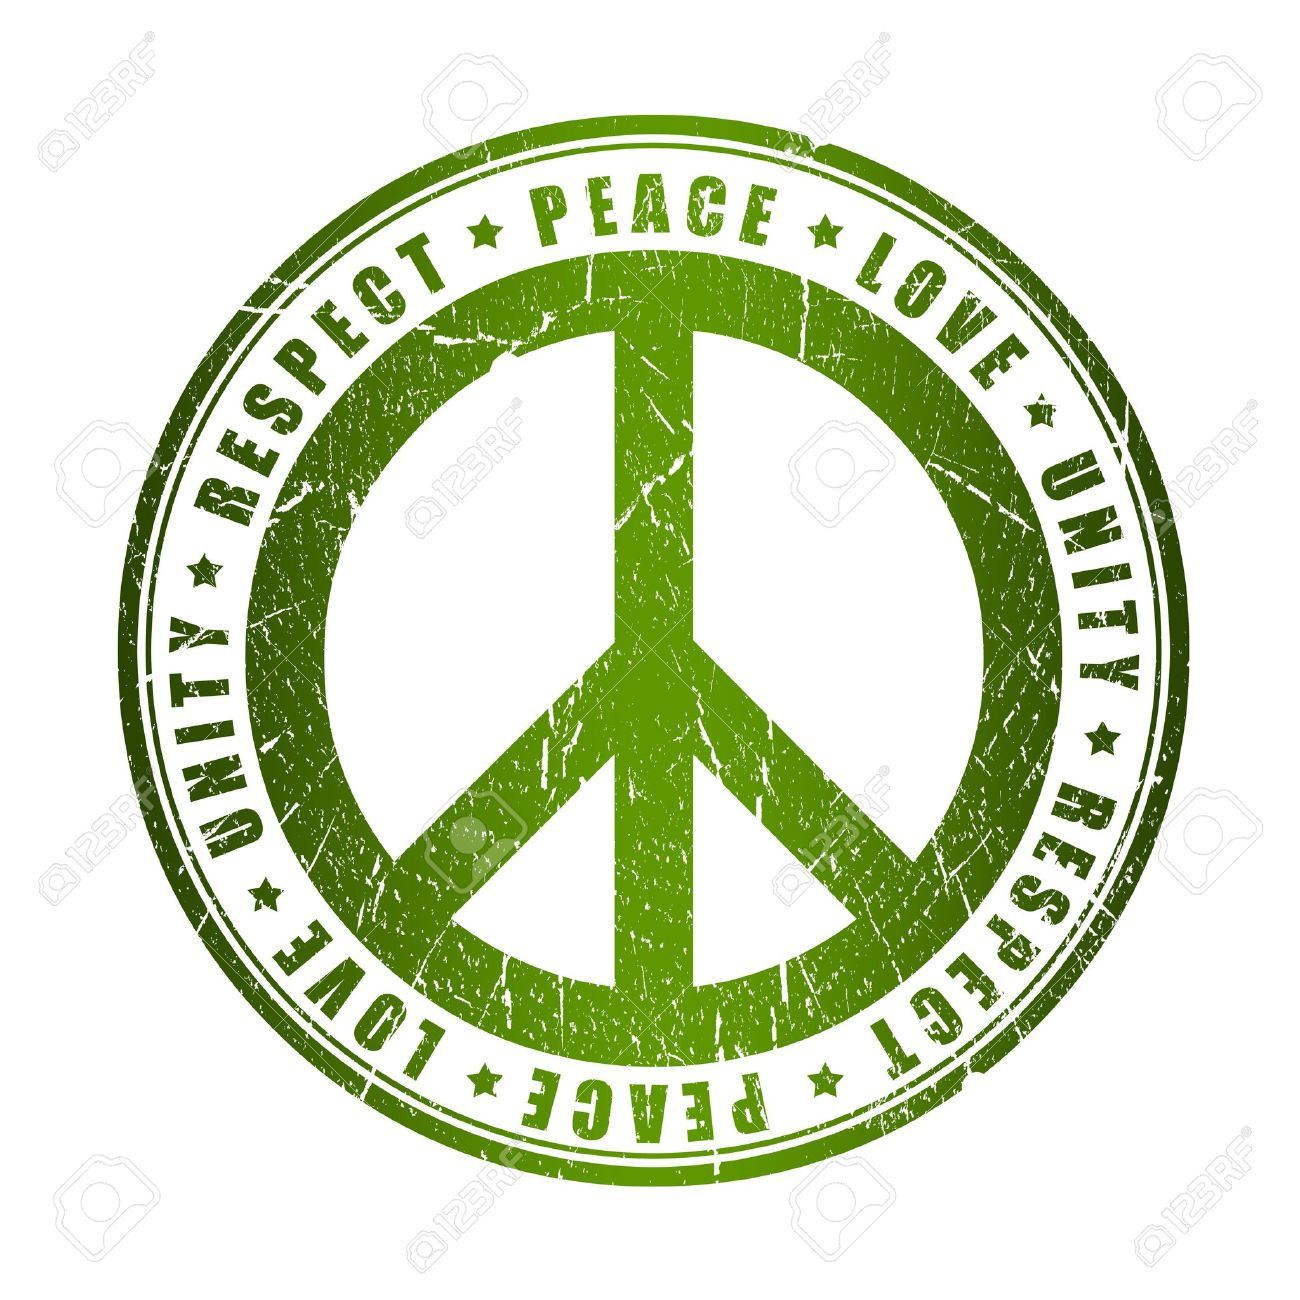 Peace symbol stock photo picture and royalty free image image peace symbol stock photo 12414956 biocorpaavc